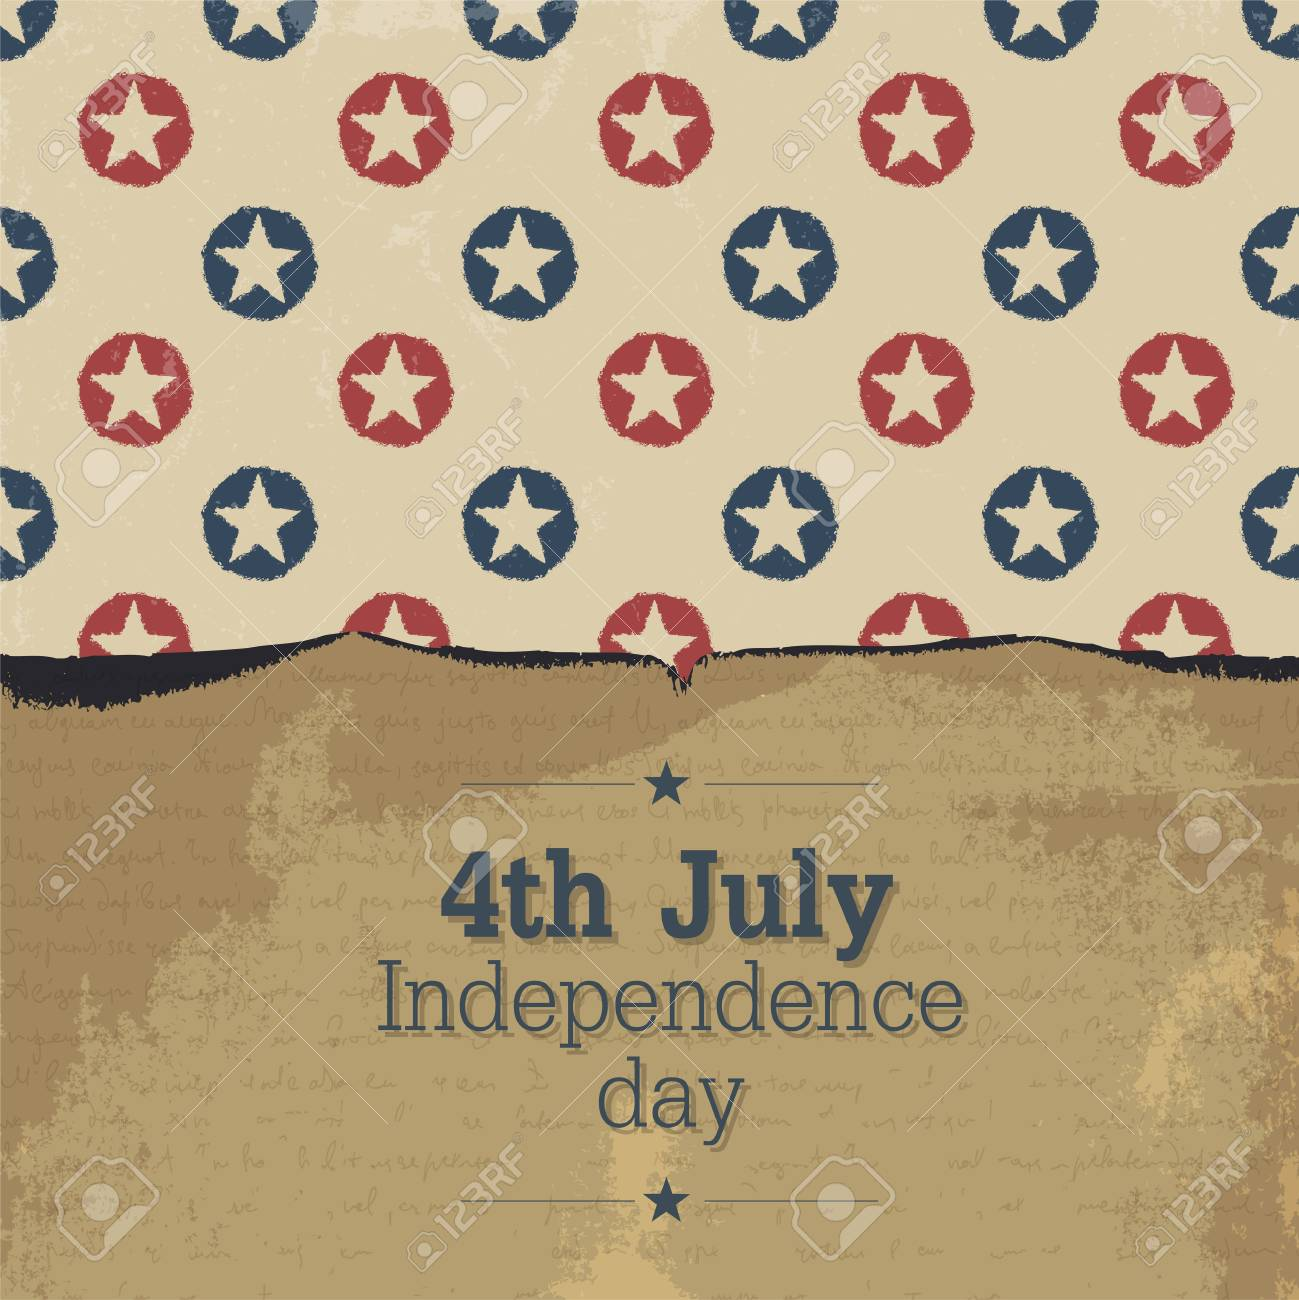 Independence day vintage poster. Stock Vector - 19187480